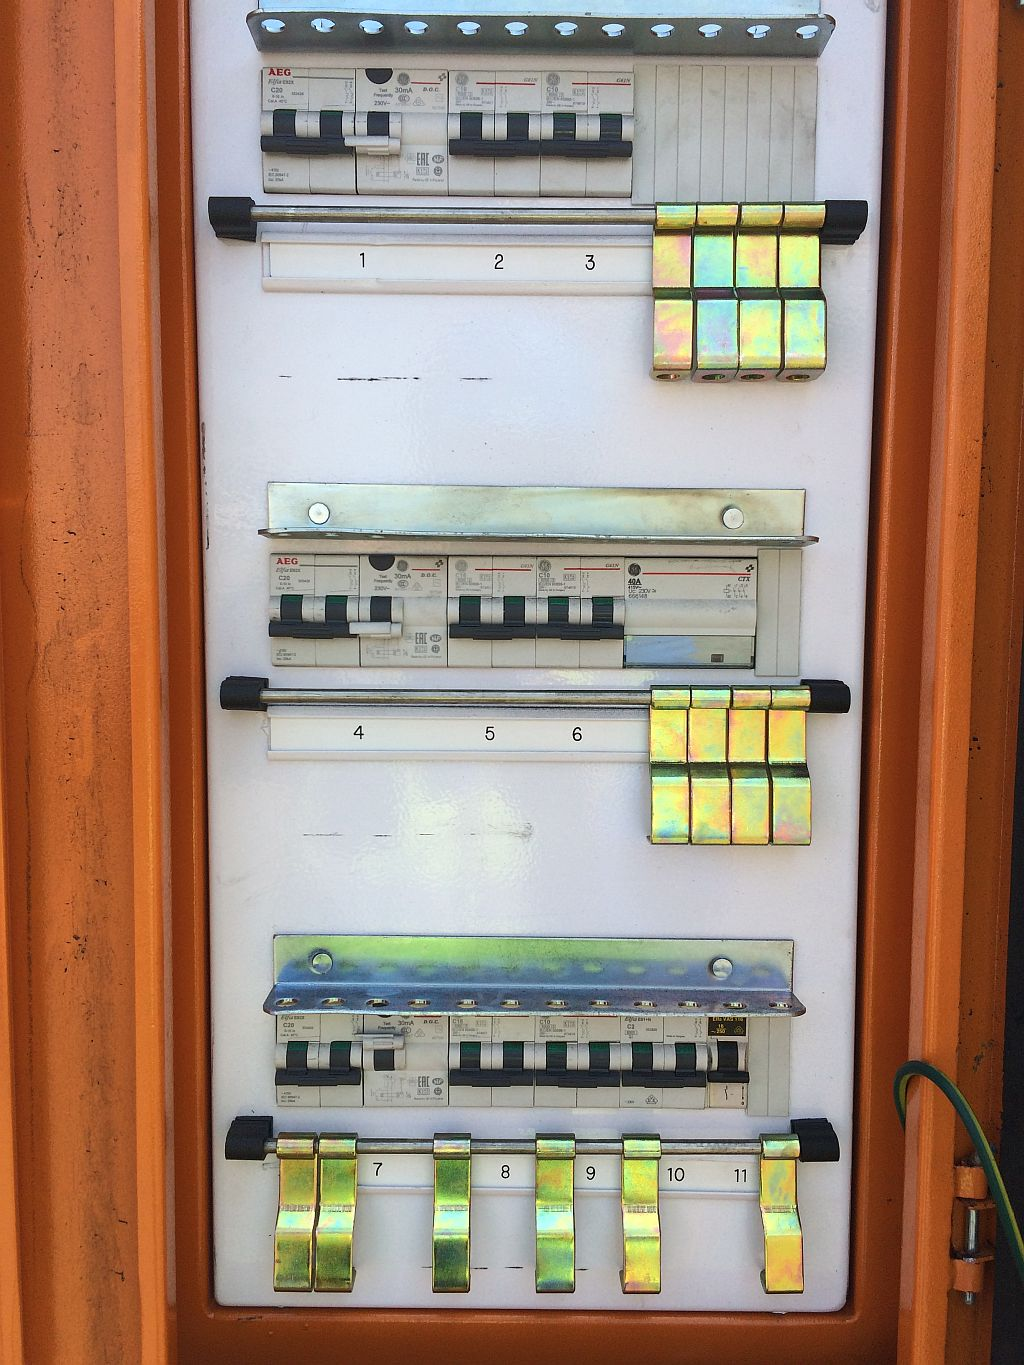 Rula Bulk Materials Handling This Is A Three Phase Electrical Panel For The Lighting And Power Of Design Instal Single Small Distribution Systems